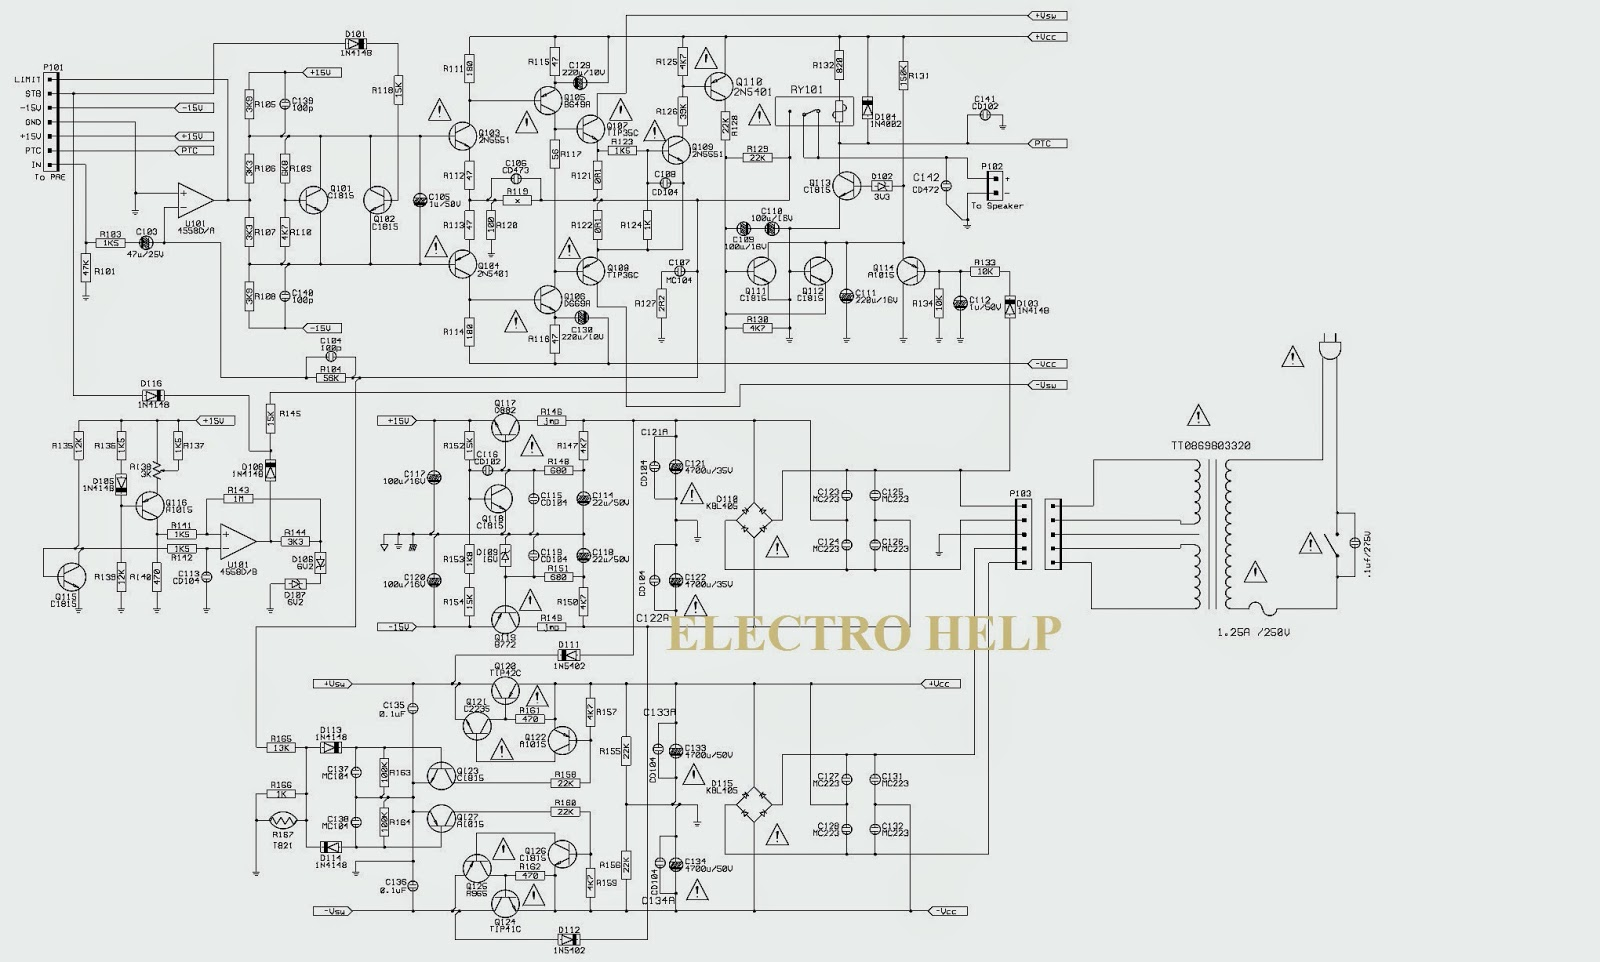 jbl home theater system cs 460 and cs 680 schematic  circuit diagram